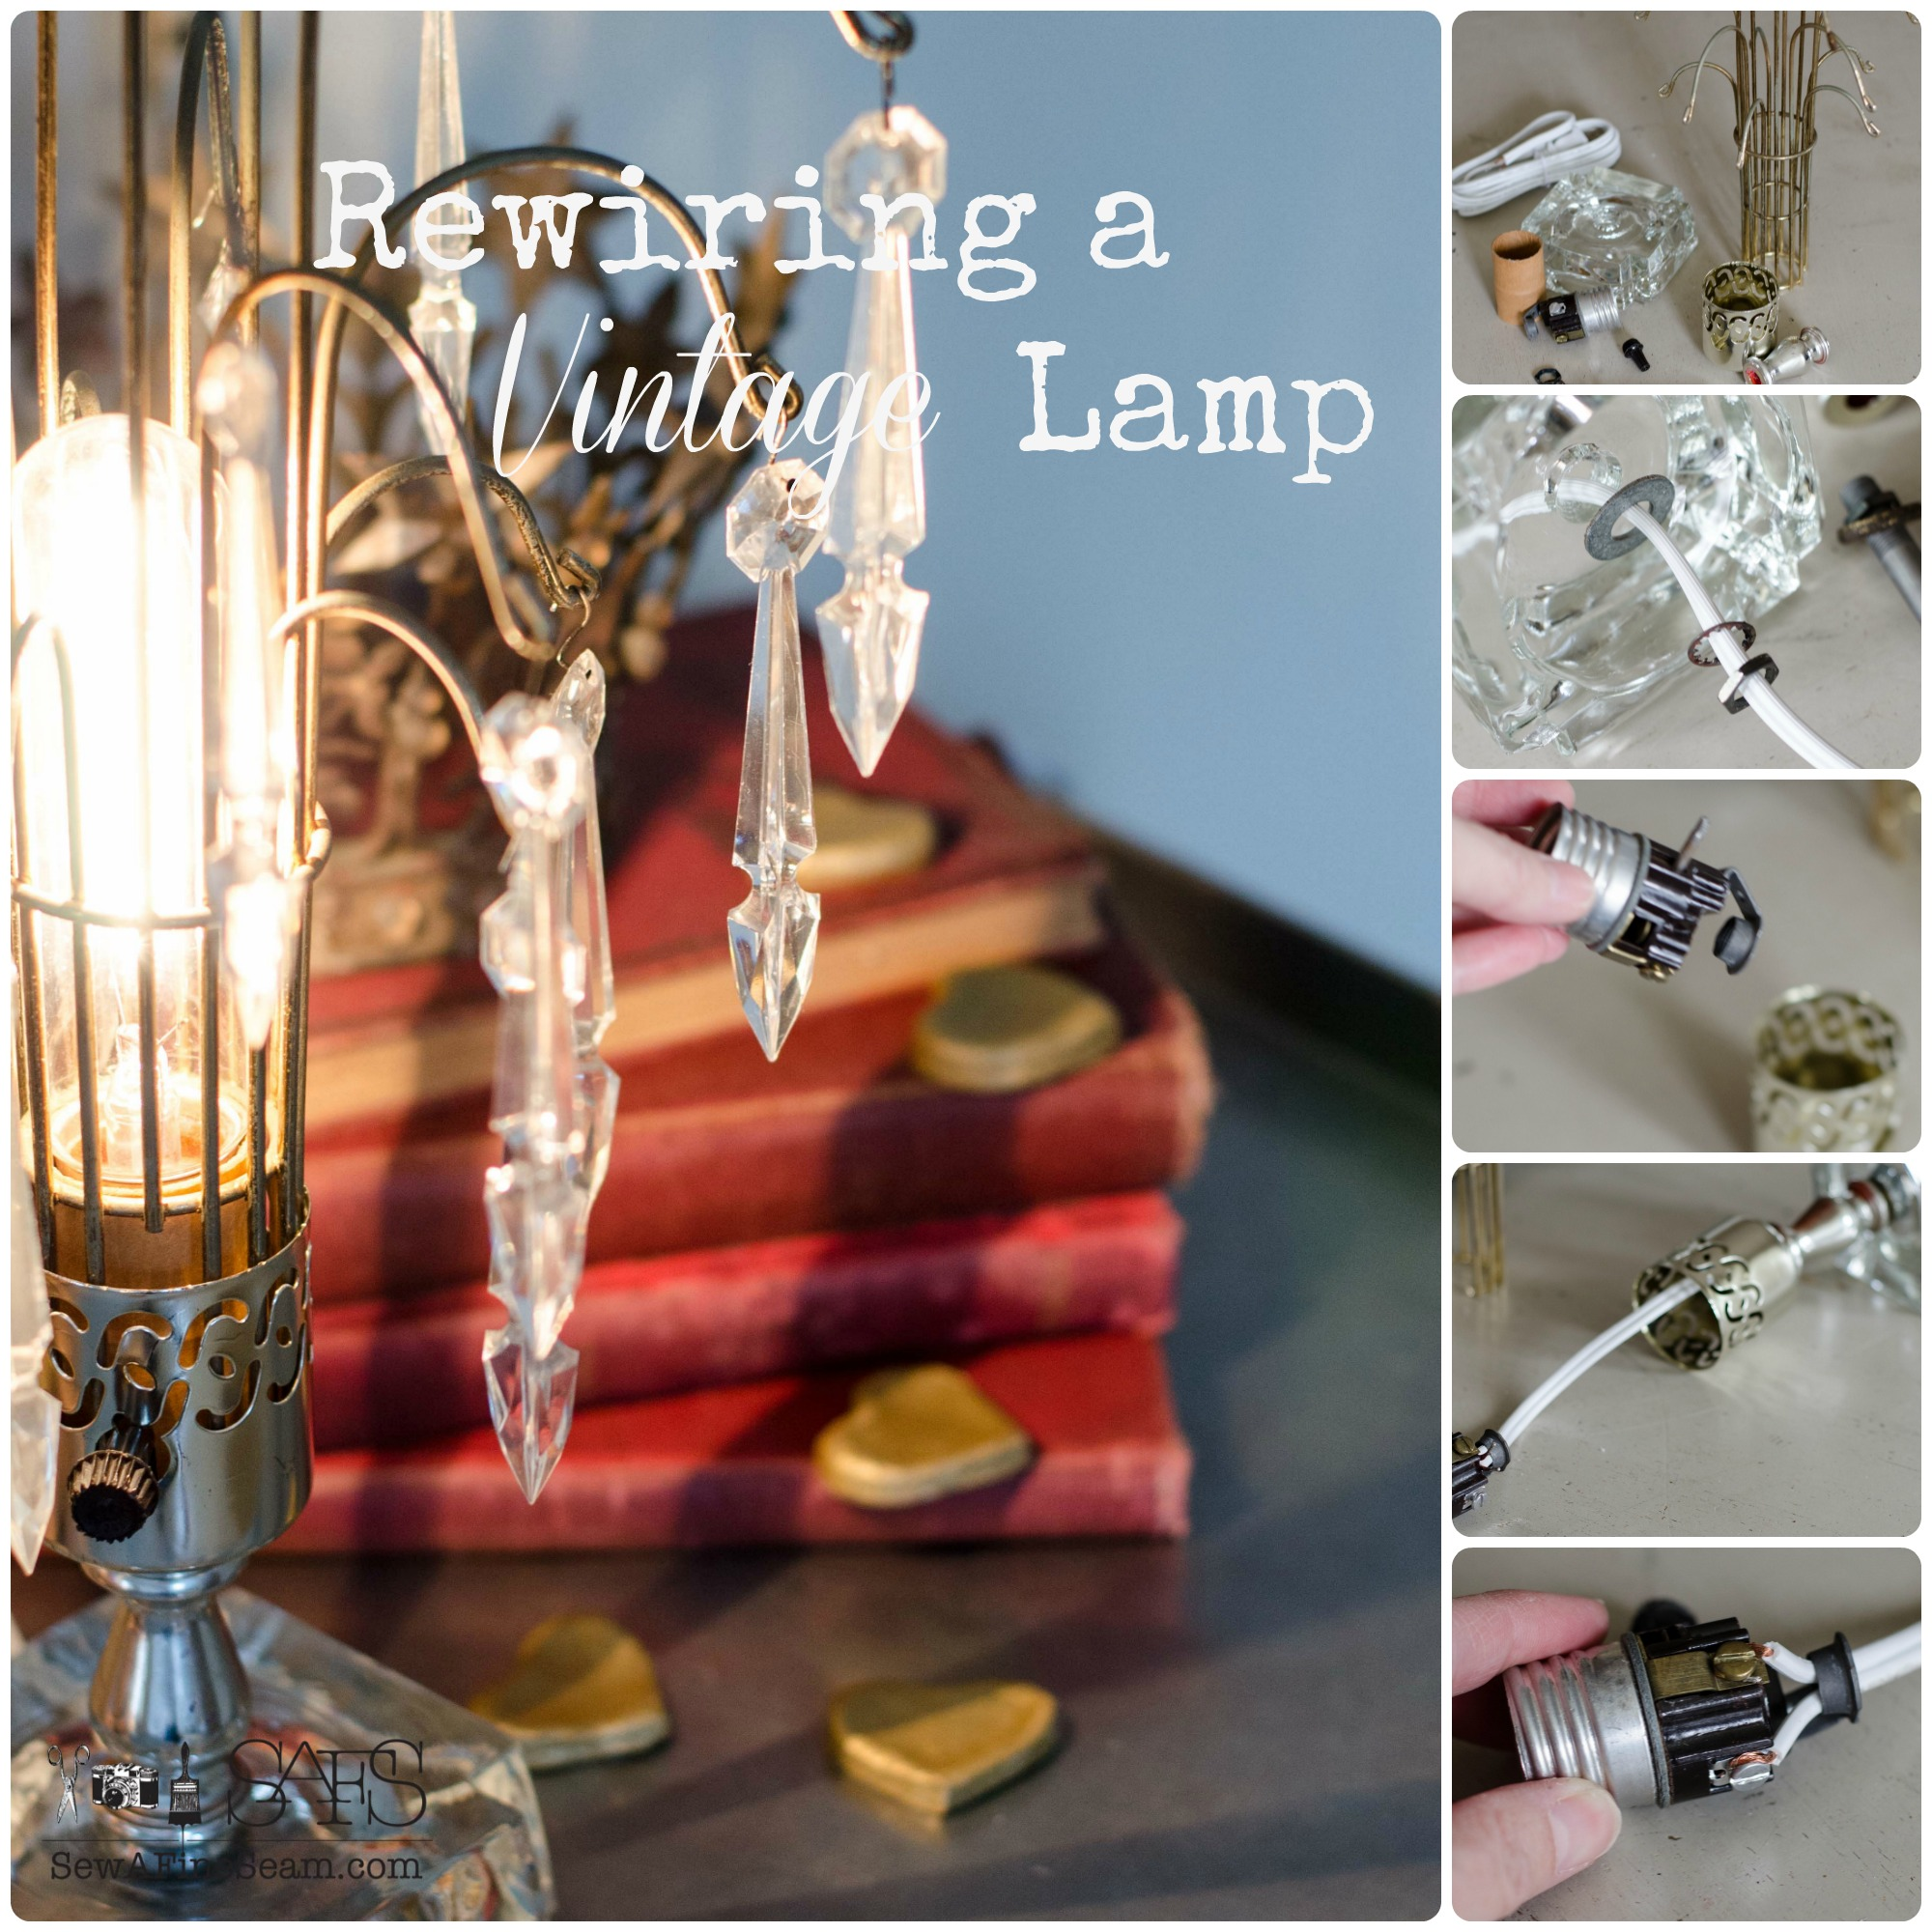 Rewiring a Vintage Lamp | Sew a Fine Seam on welding a lamp, rewiring lamp parts, rewire a lamp, design a lamp, rewiring lamp fixture, soldering a lamp, paint a lamp, wire a lamp, repair a lamp, rebuilding a lamp, rewiring radio, diy pipe lamp, polishing a lamp, lights a lamp, repainting a lamp, plastering a lamp,